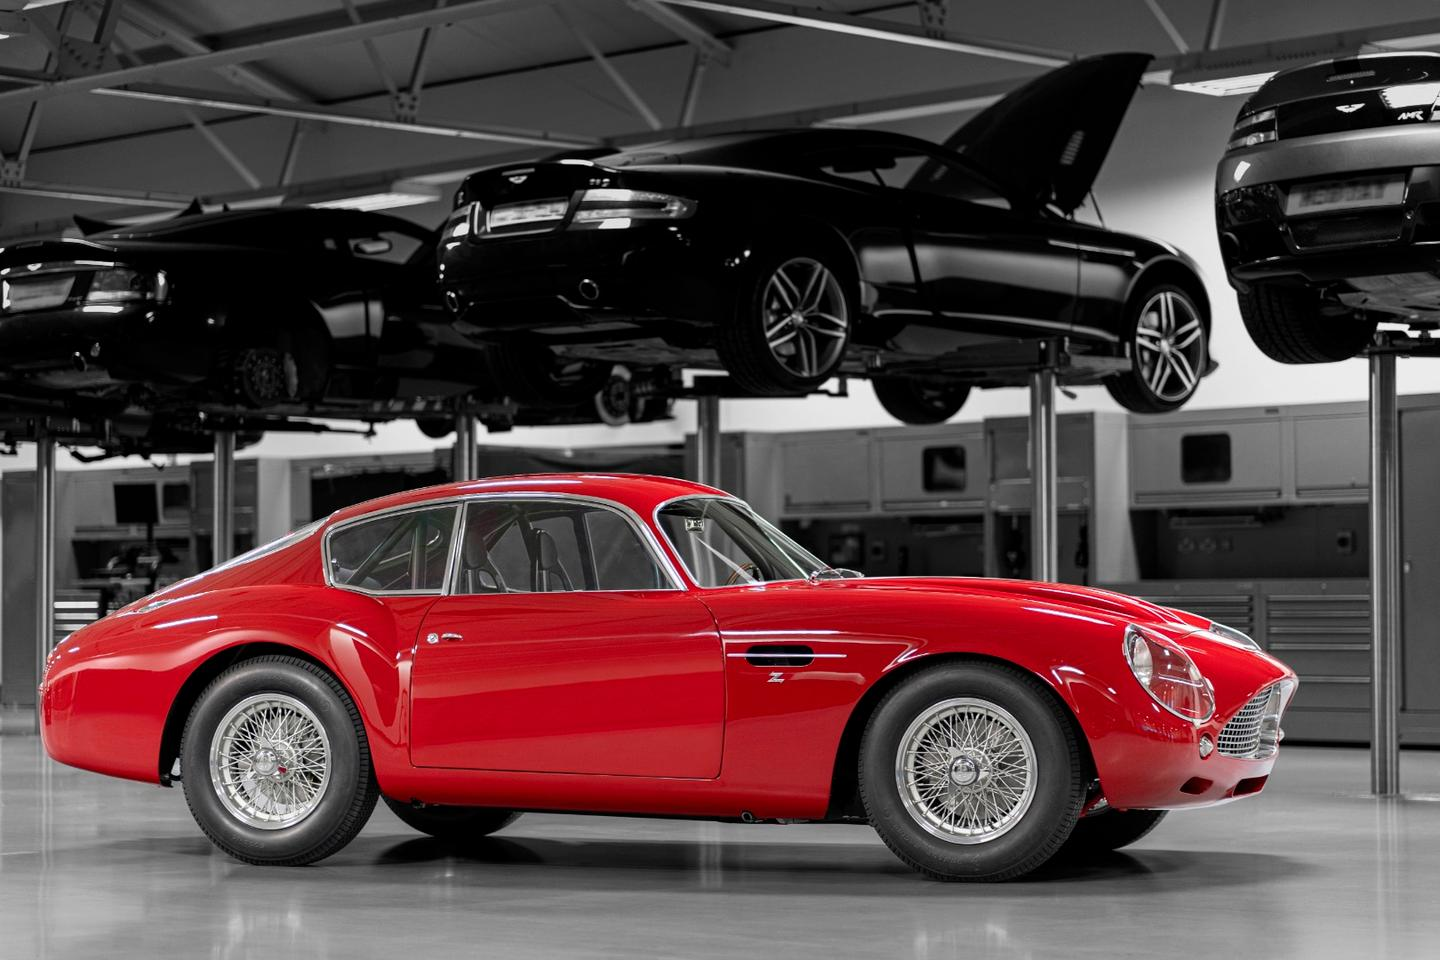 Aston Martin's DB4 GT Zagato Continuation will make its public debut at the 24 Hours of Le Mans 2019 on June 14-16